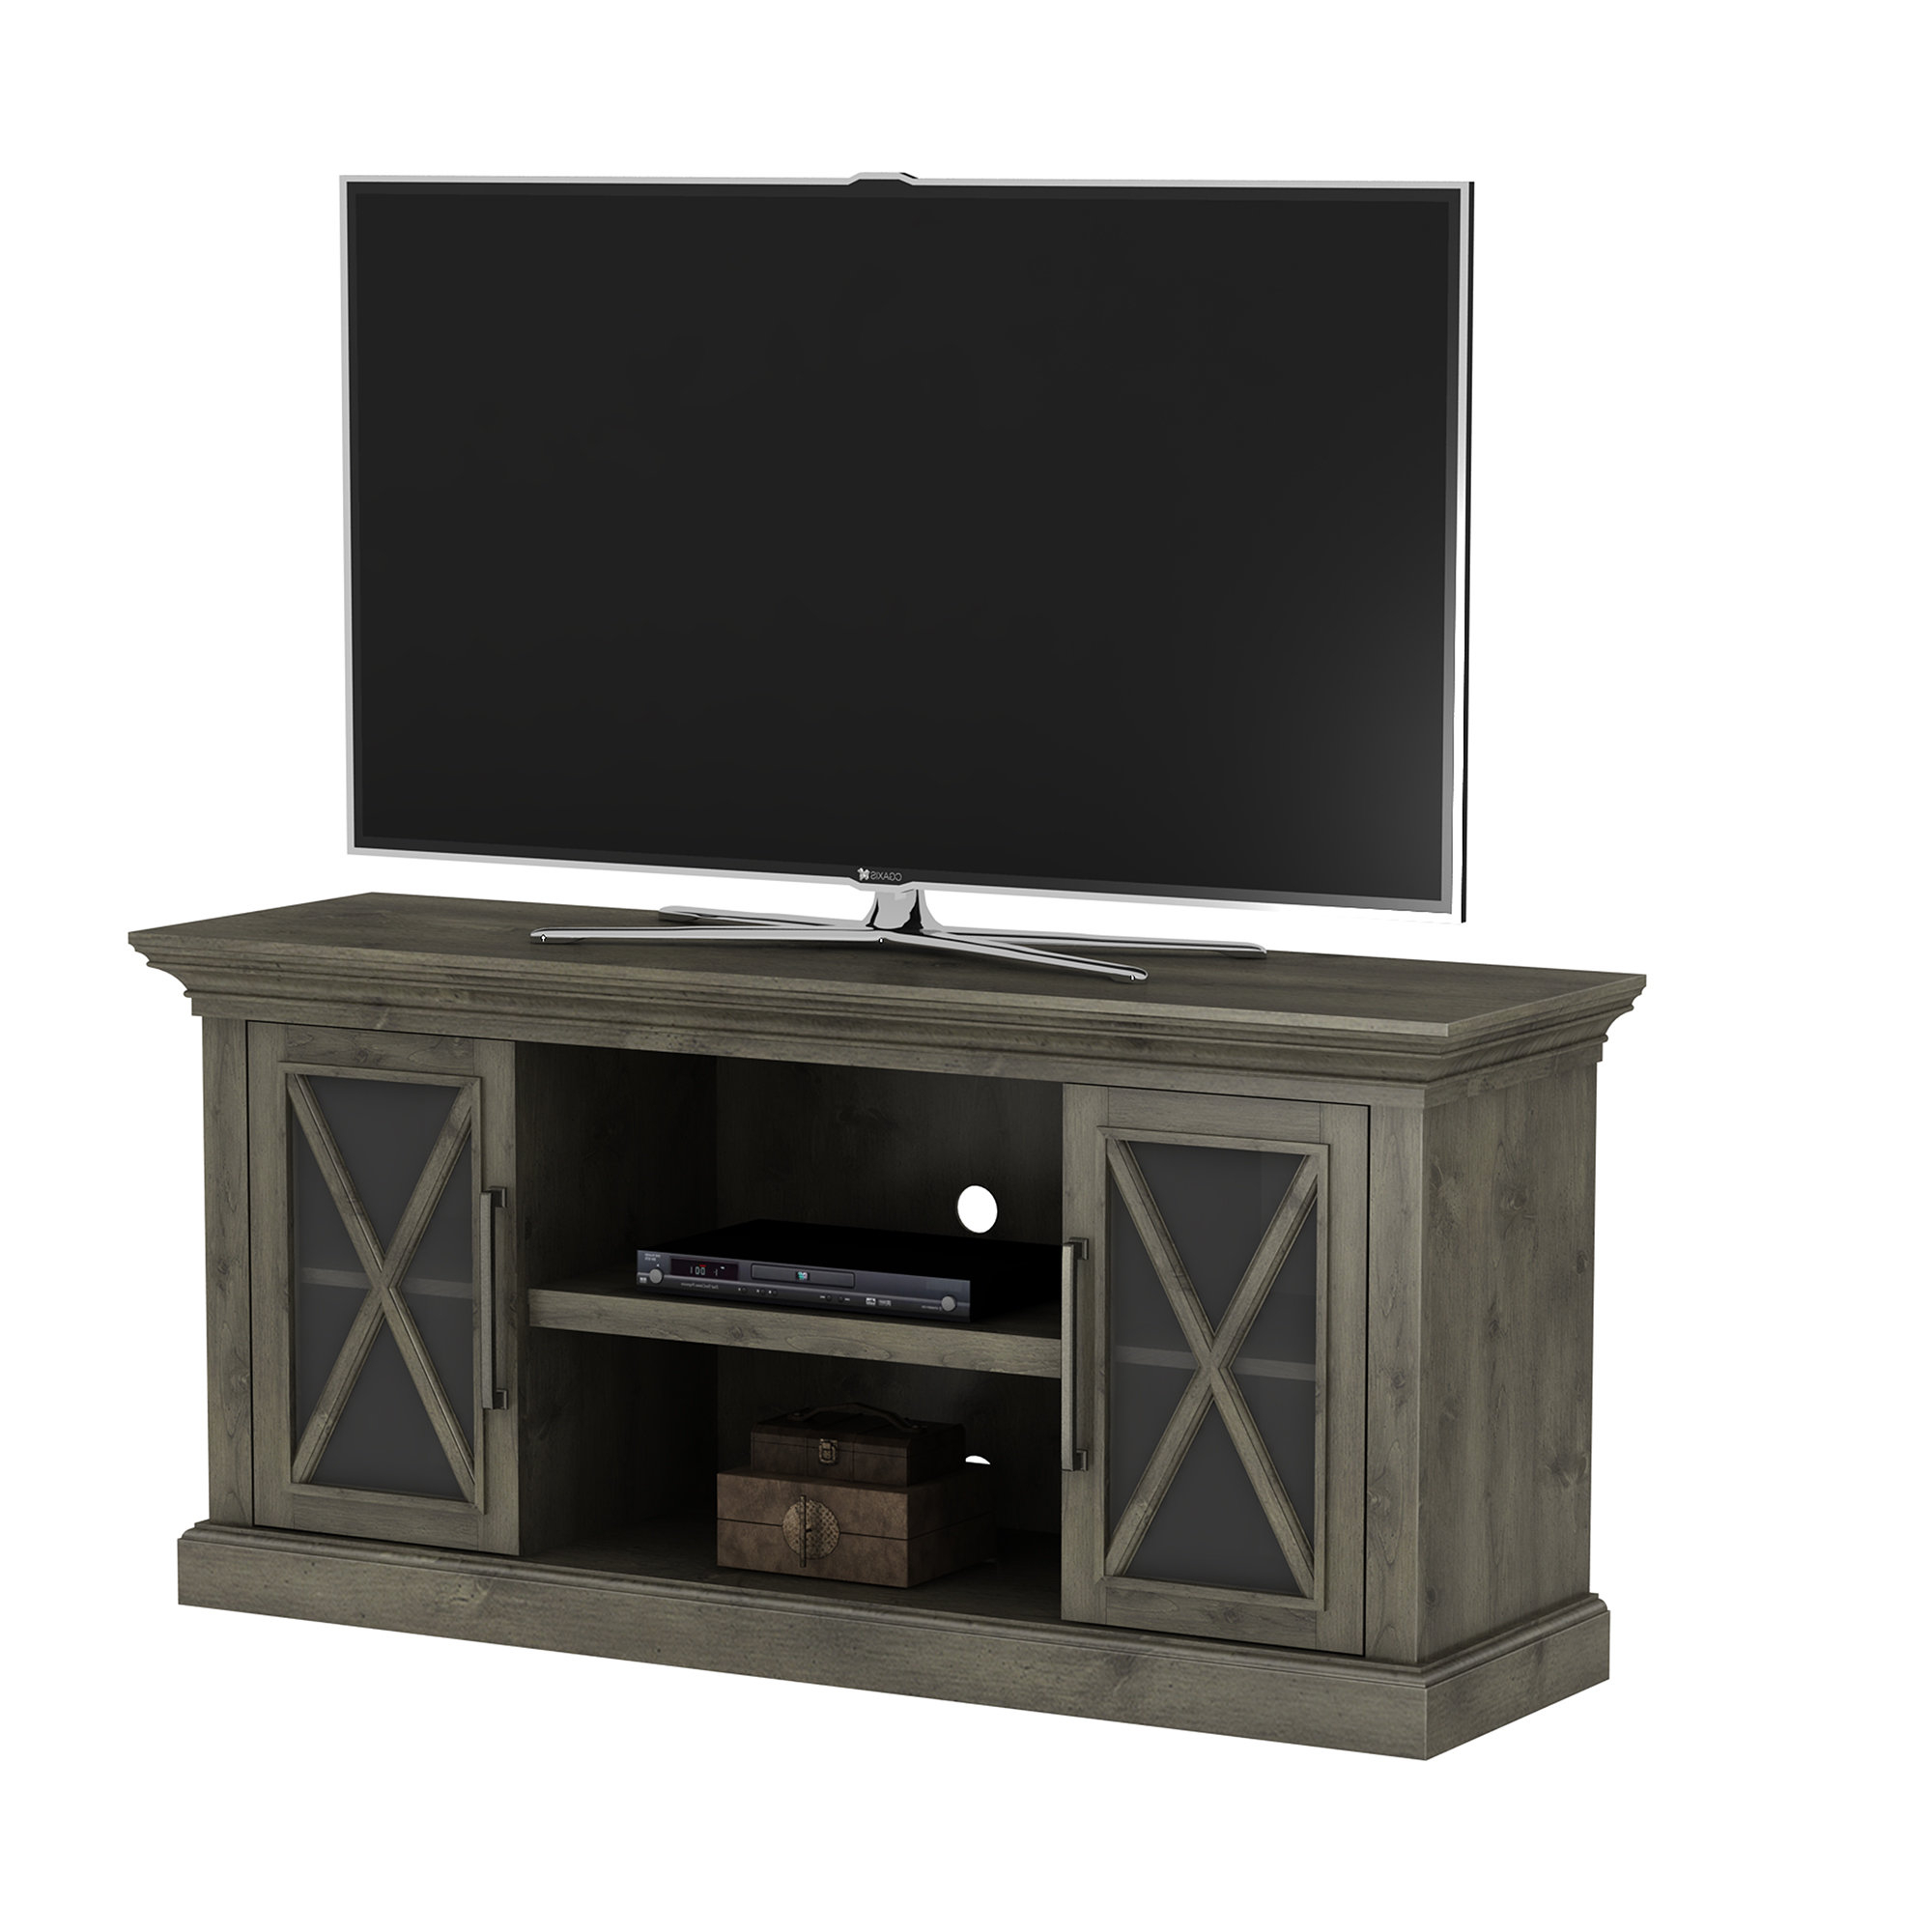 Loon Peak Blane Tv Stand For Tvs Up To 65"